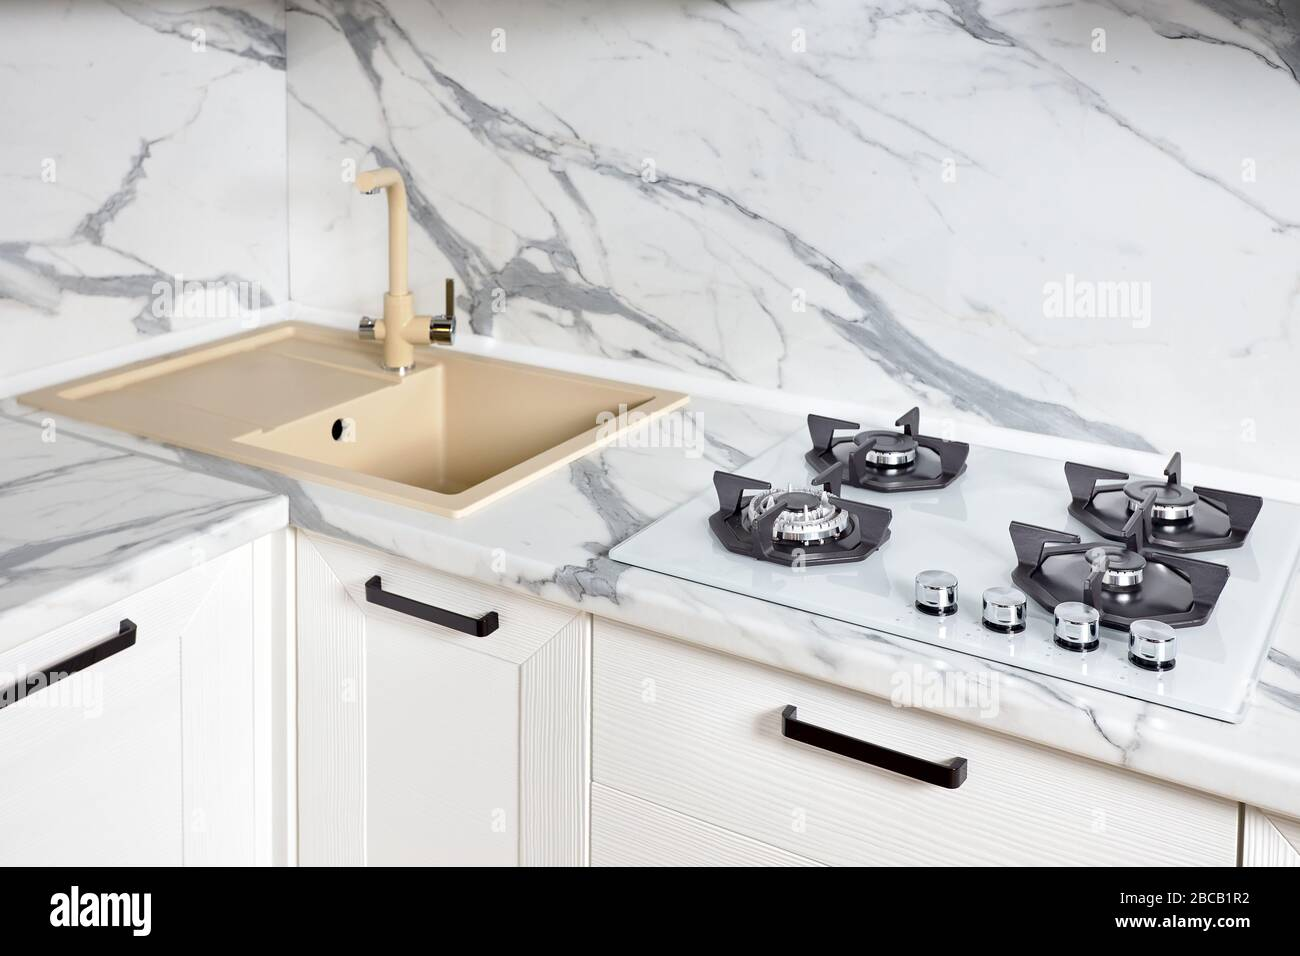 Modern design chrome water tap over stainless steel kitchen sink on table top made of white stone marble or granite. Stock Photo